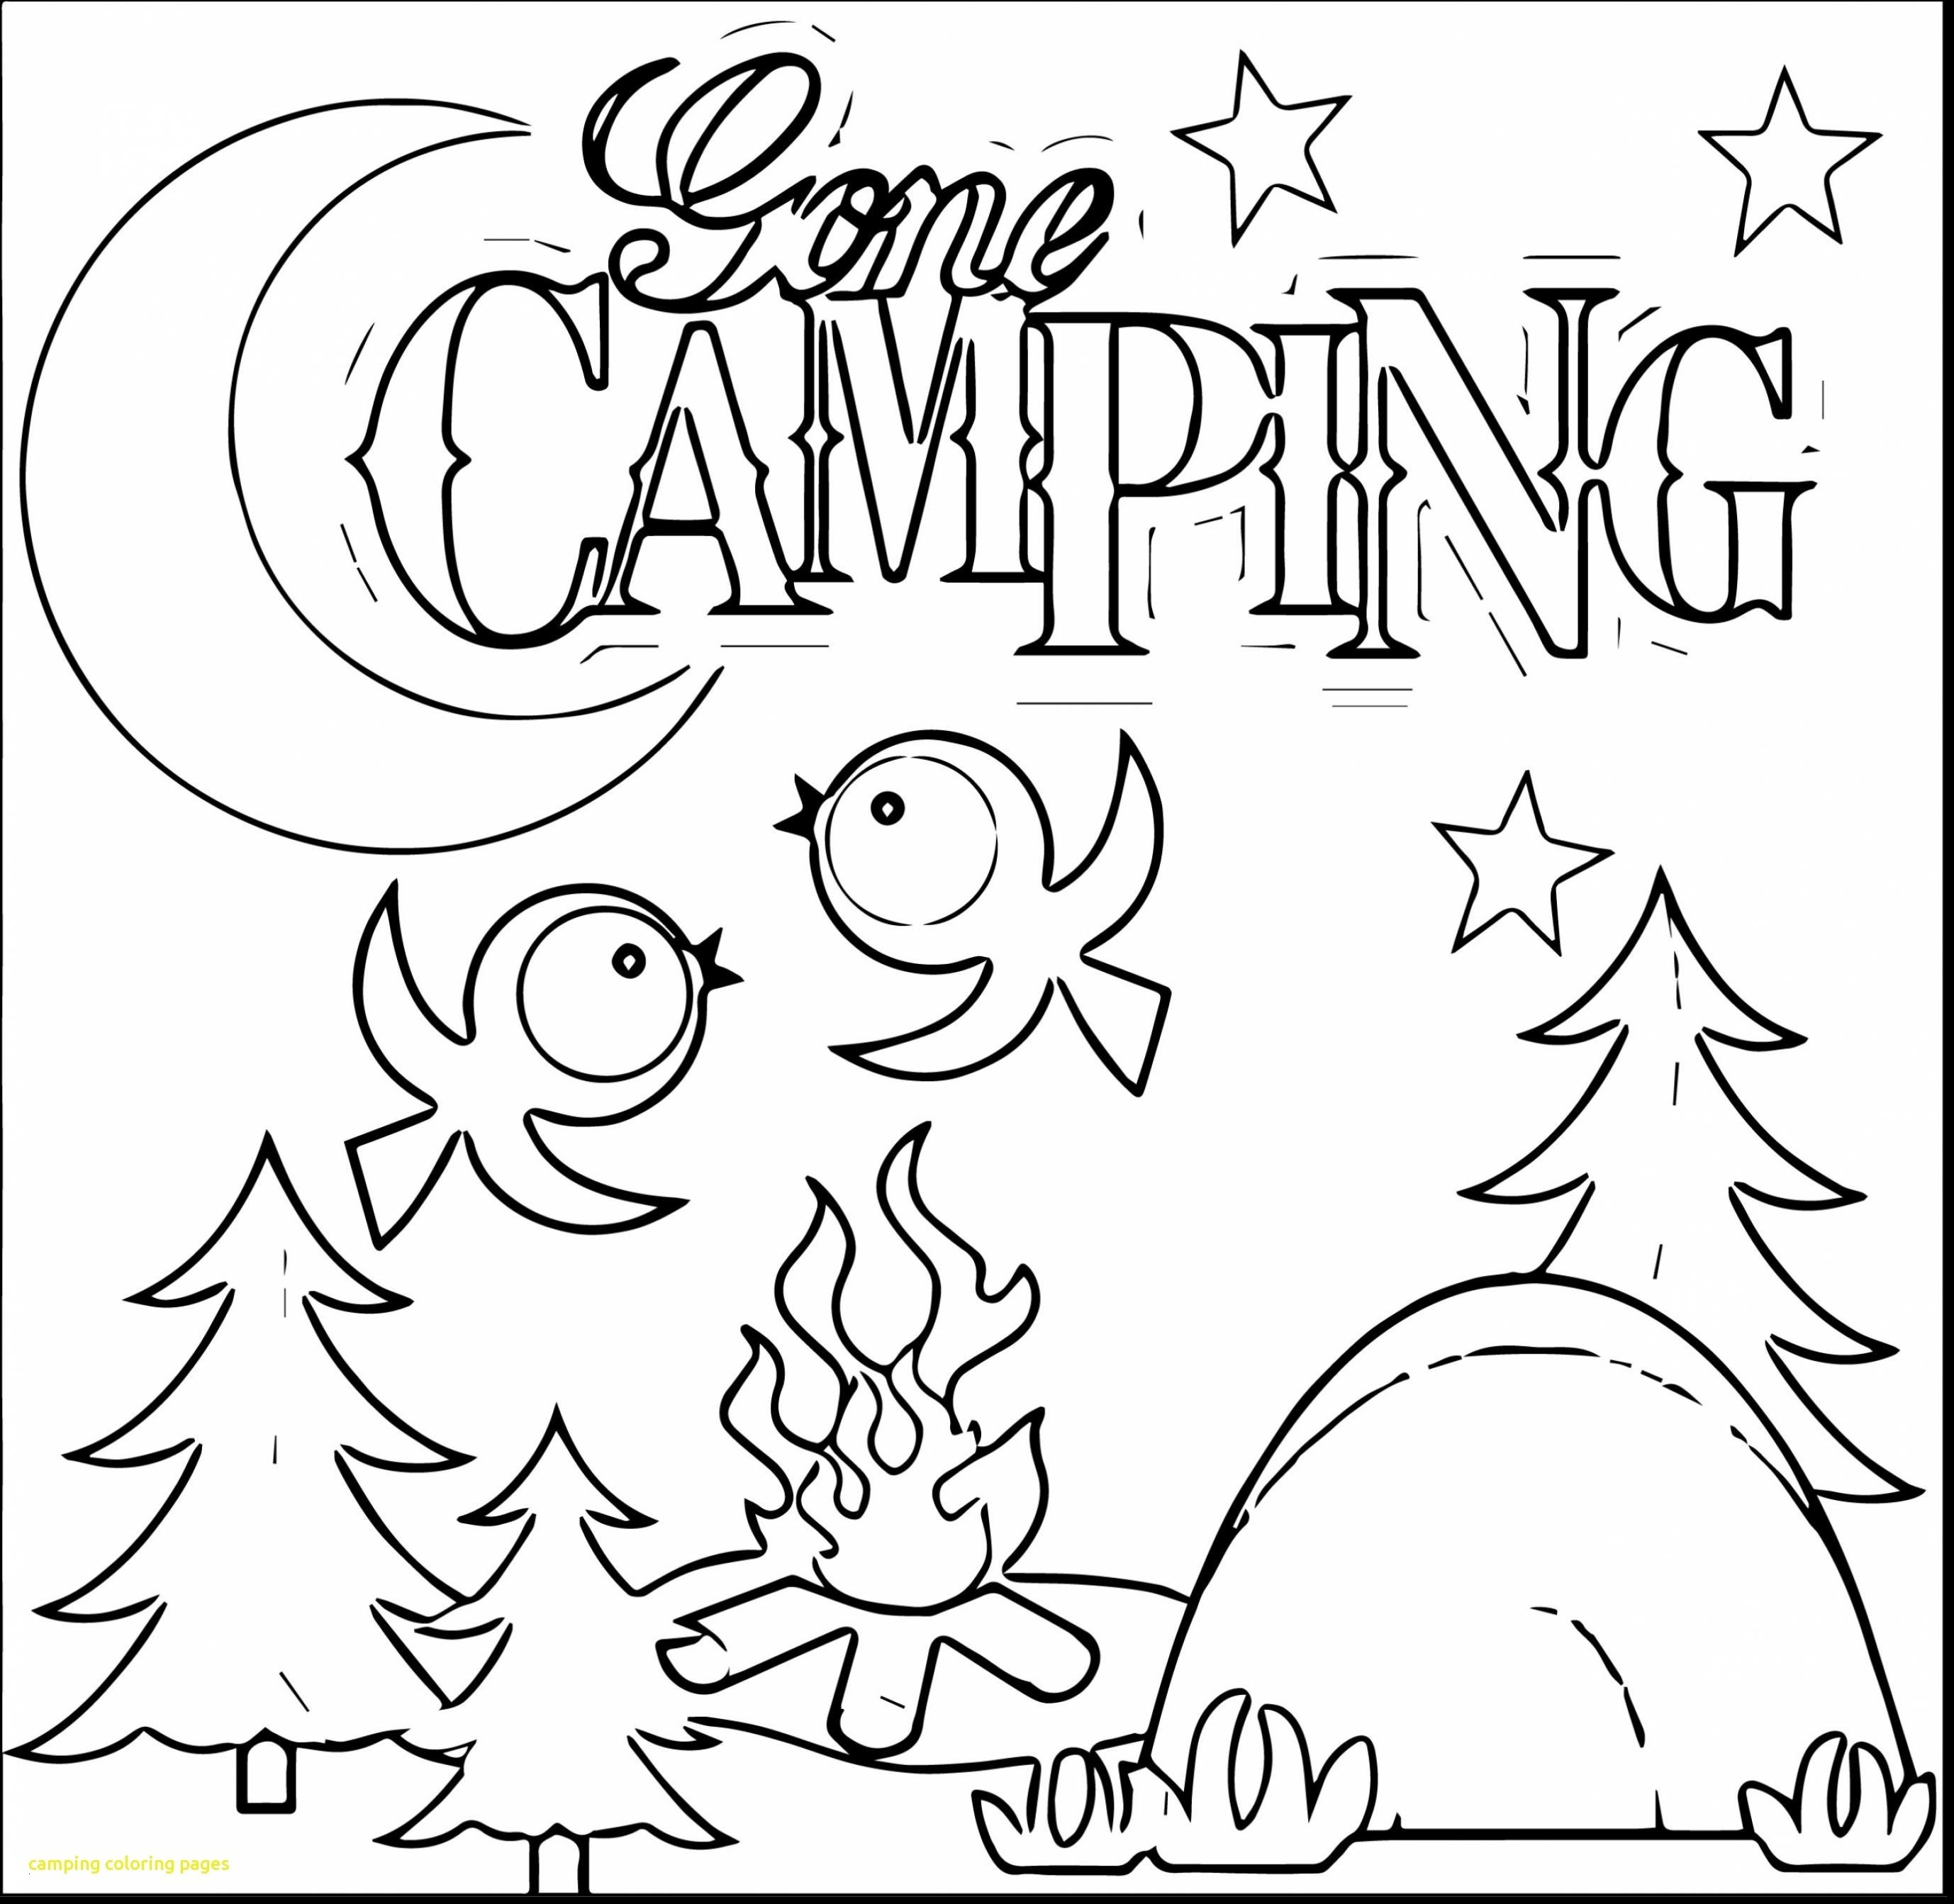 camping coloring pages to print Collection-Zoey 101 Coloring Pages Camping Coloring Pages Printable 21csb 1-n